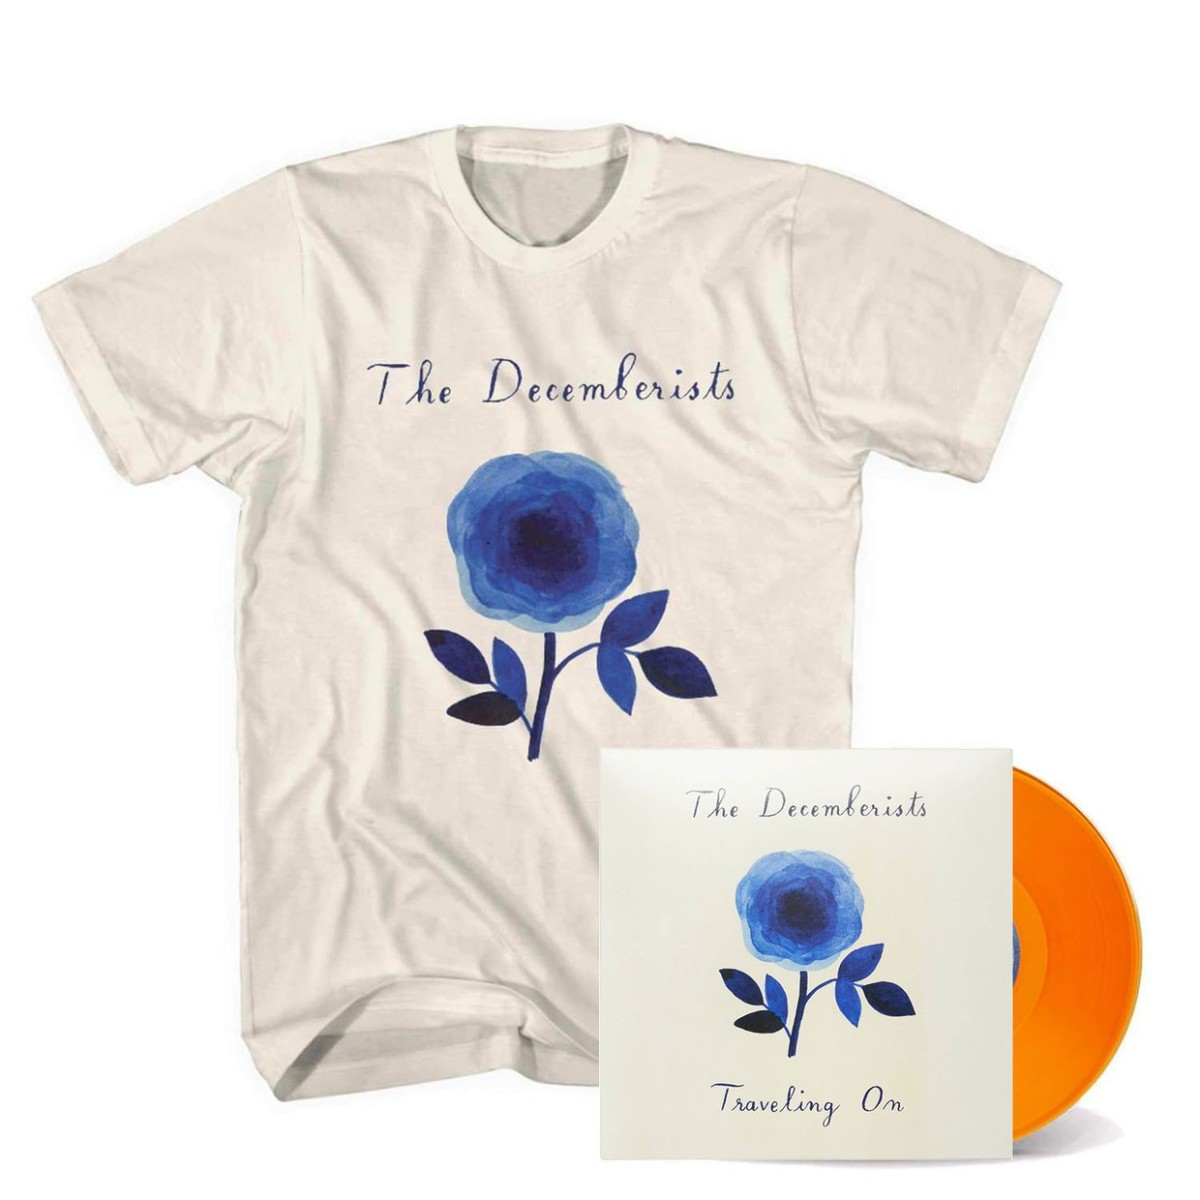 "'Traveling On' EP 10"" Vinyl + T-Shirt Bundle"